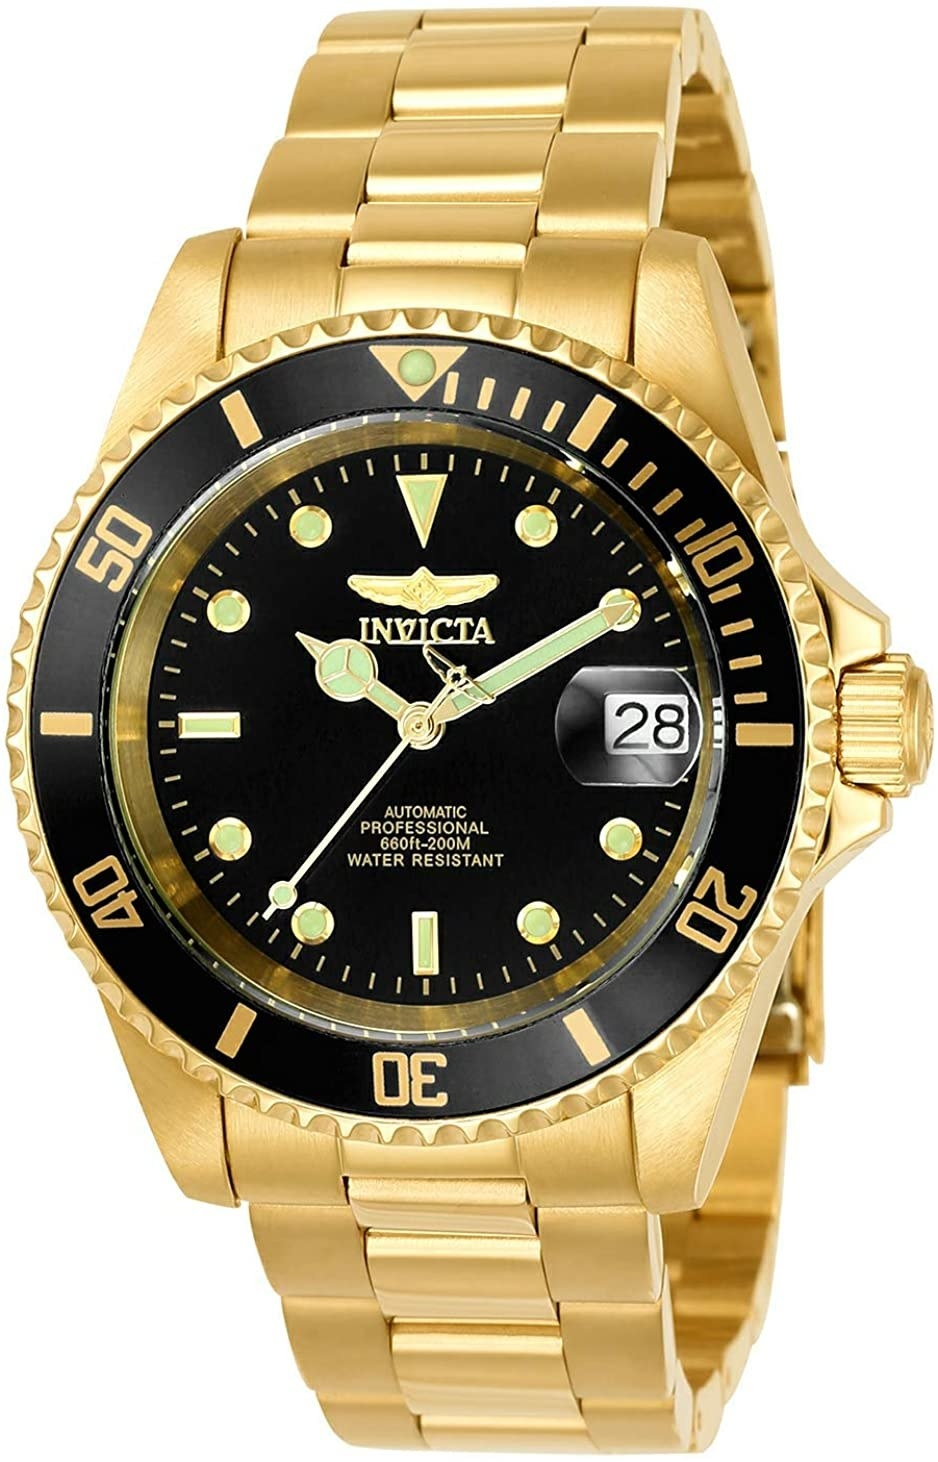 A black and gold Invicta watch